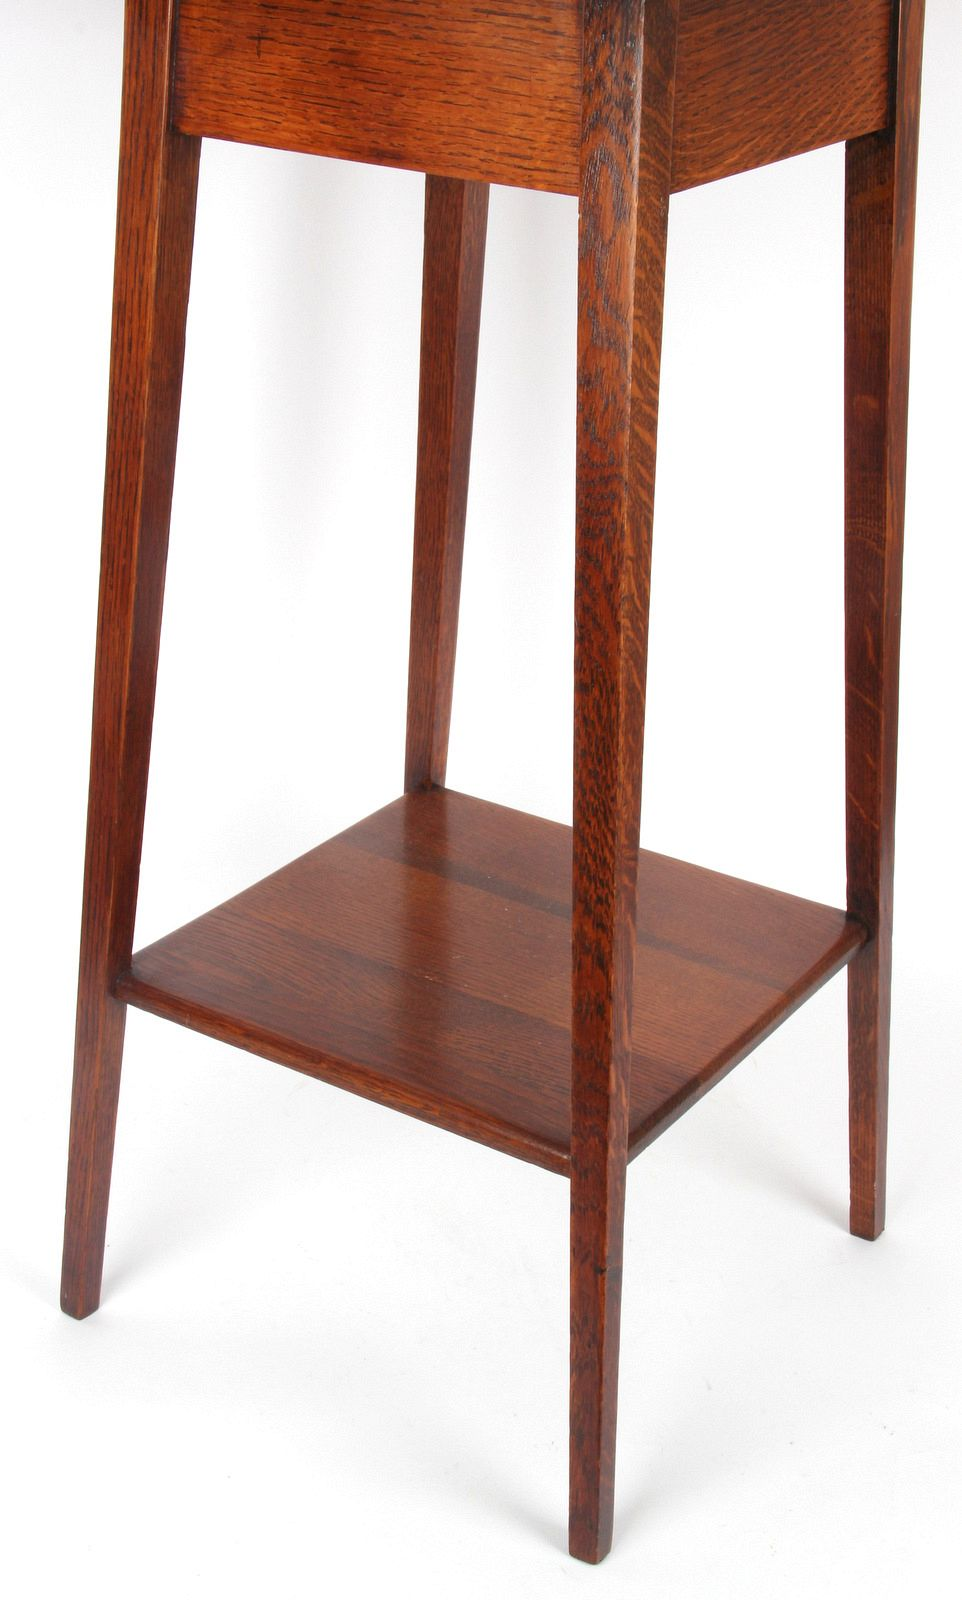 This Is A Very Useful Arts And Crafts Simple Small Oak Side Table, Perfect  For Putting A Lamp On. It Is Well Made Using Choice Timber.